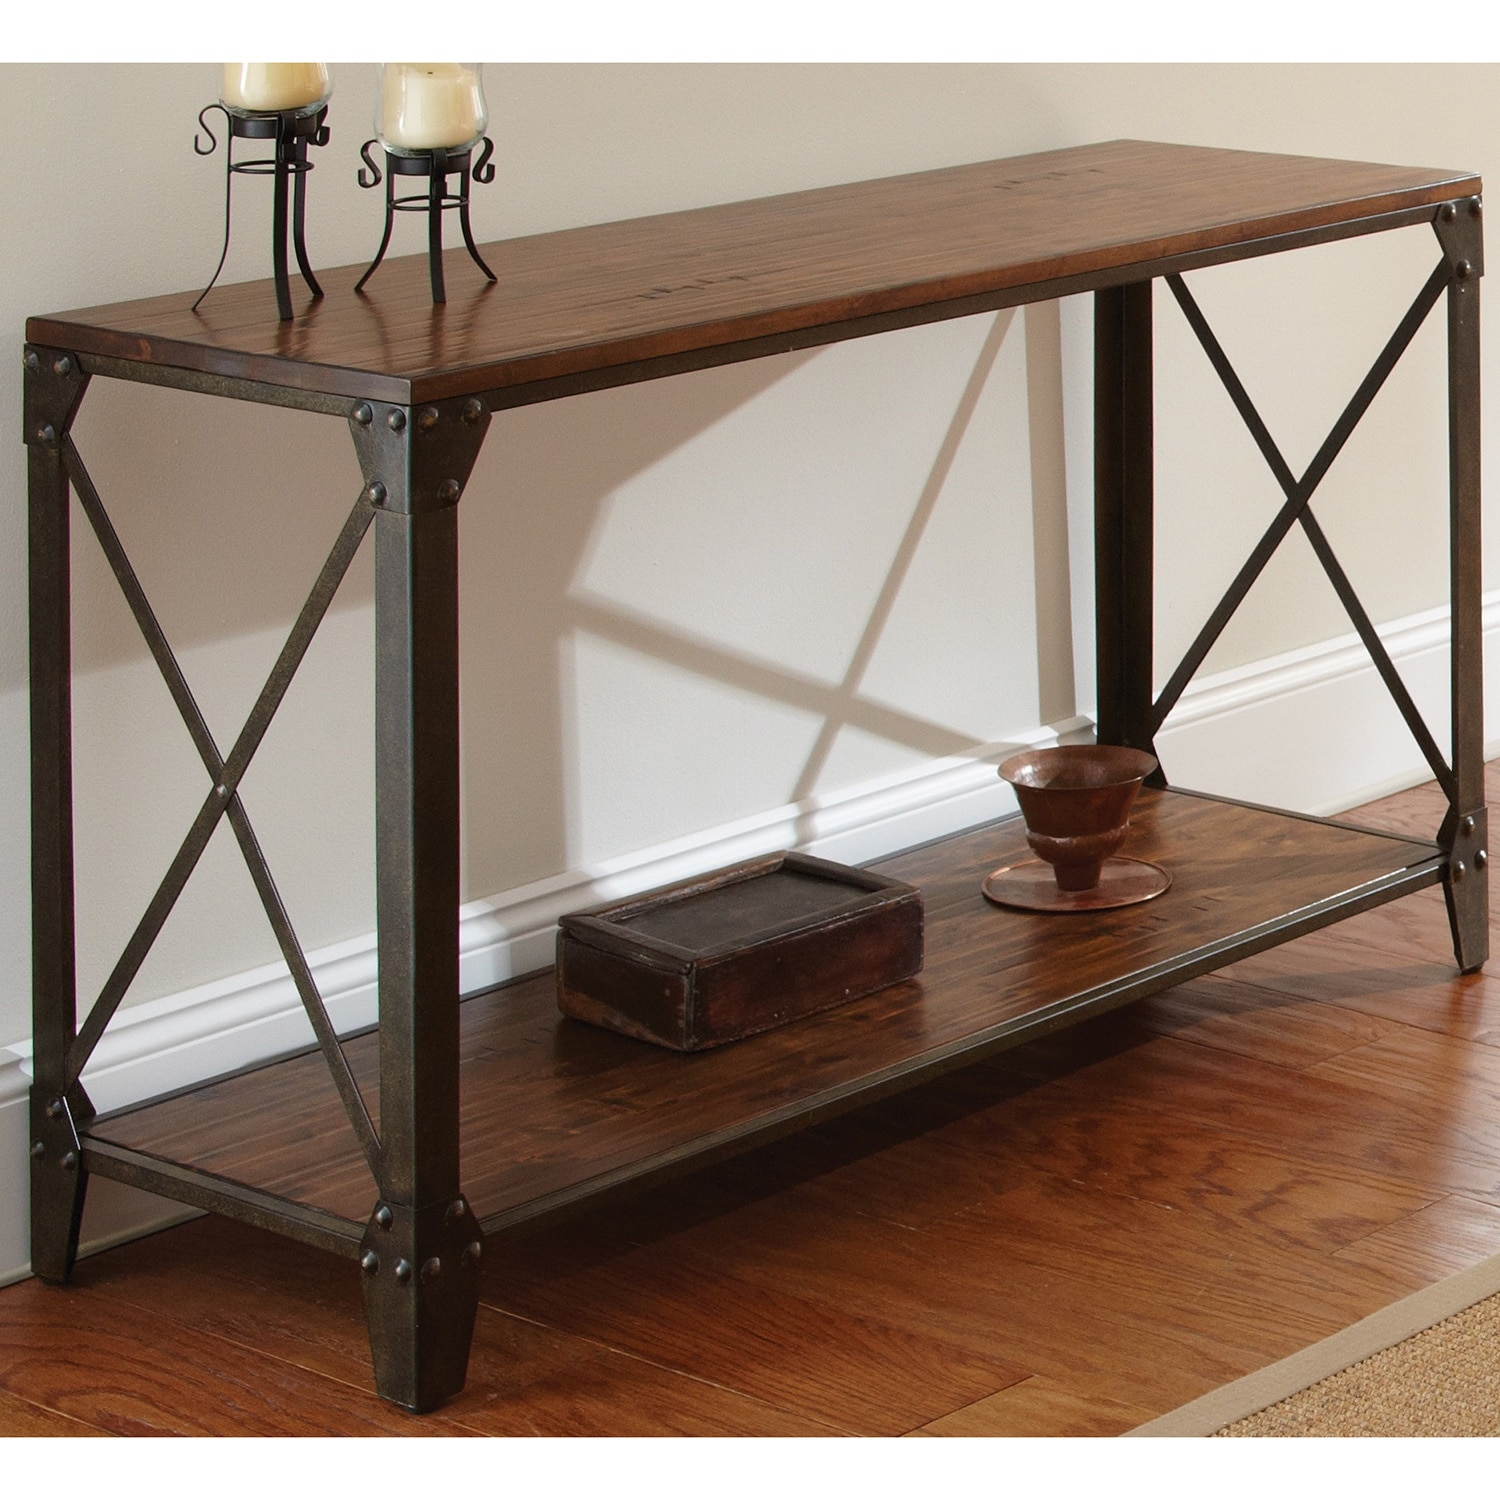 Shop Carbon Loft Fischer Solid Wood and Iron Rustic Sofa Table - On ...